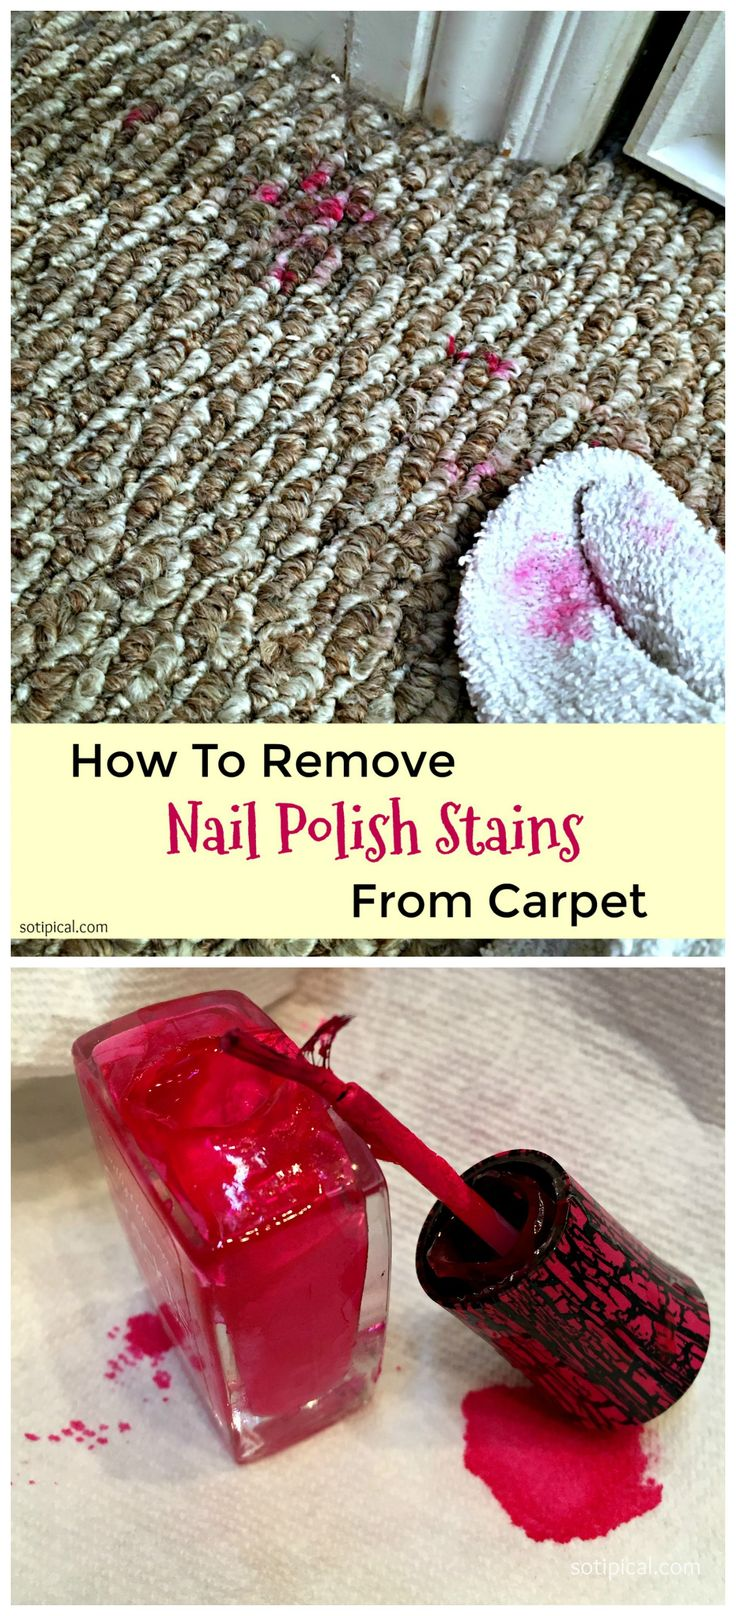 How To Remove Nail Polish Stains From Carpet - So TIPical Me